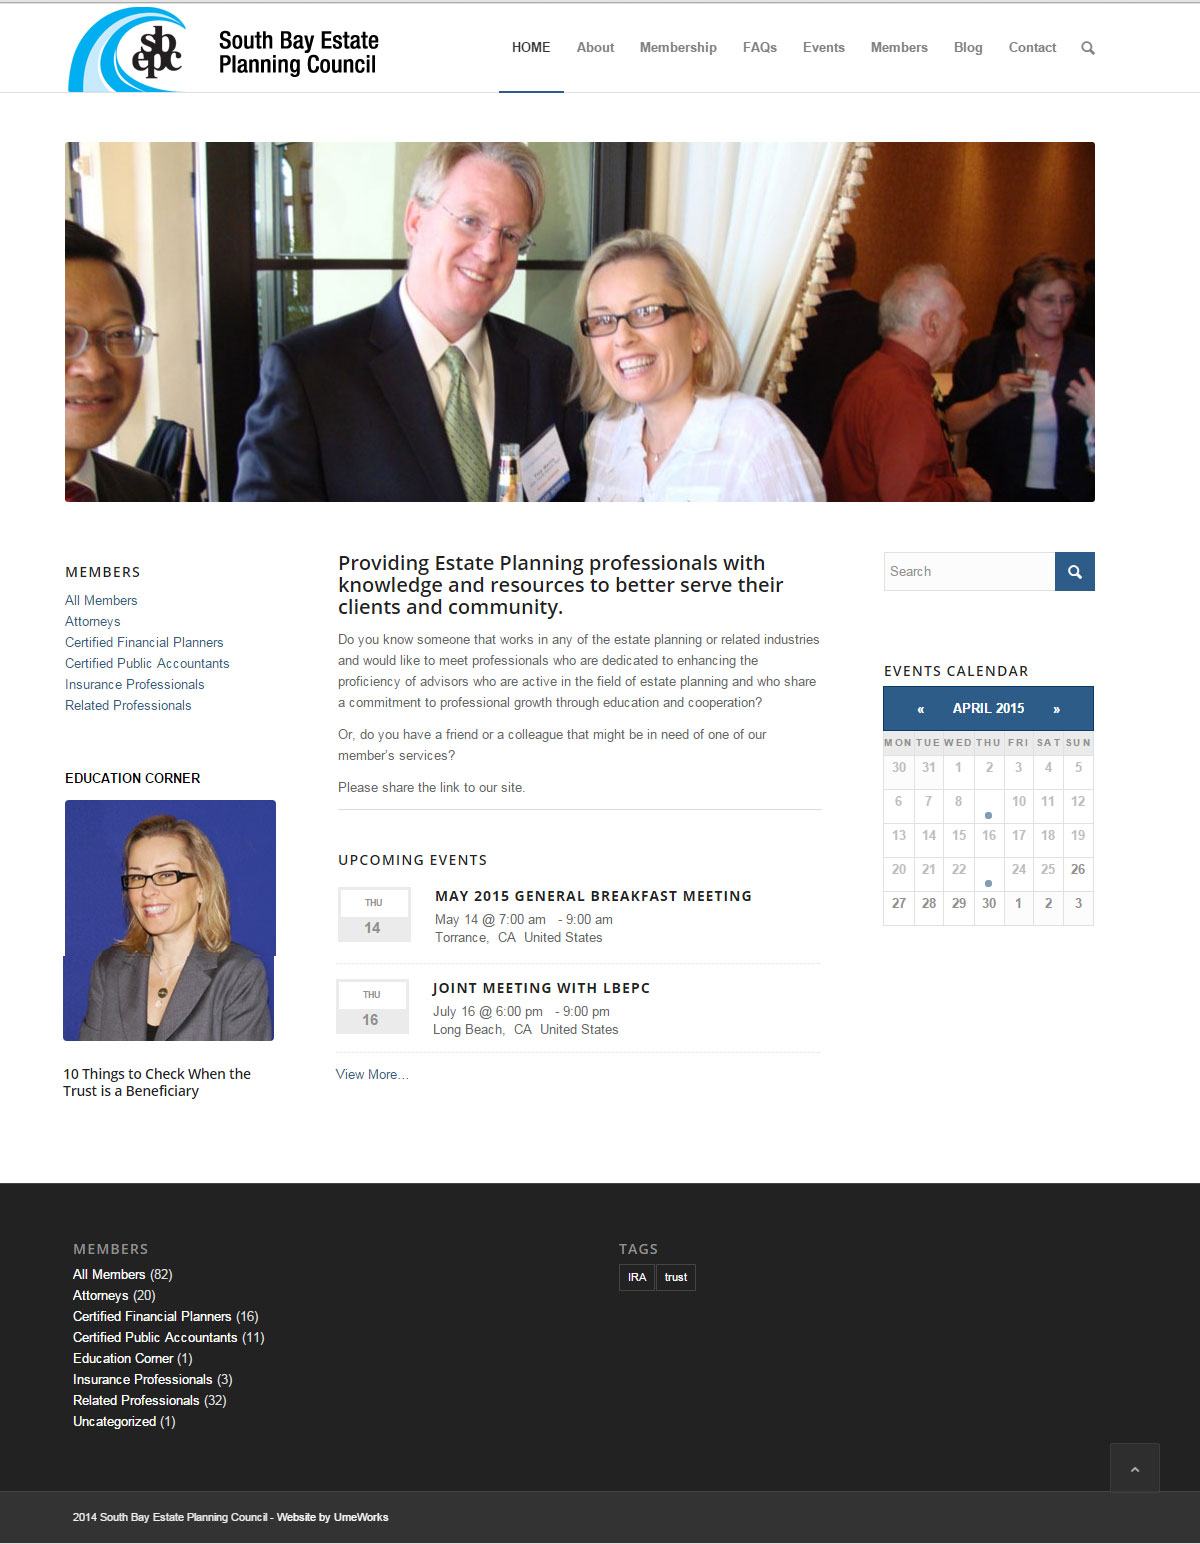 South Bay Estate Planning Council home page screenshot